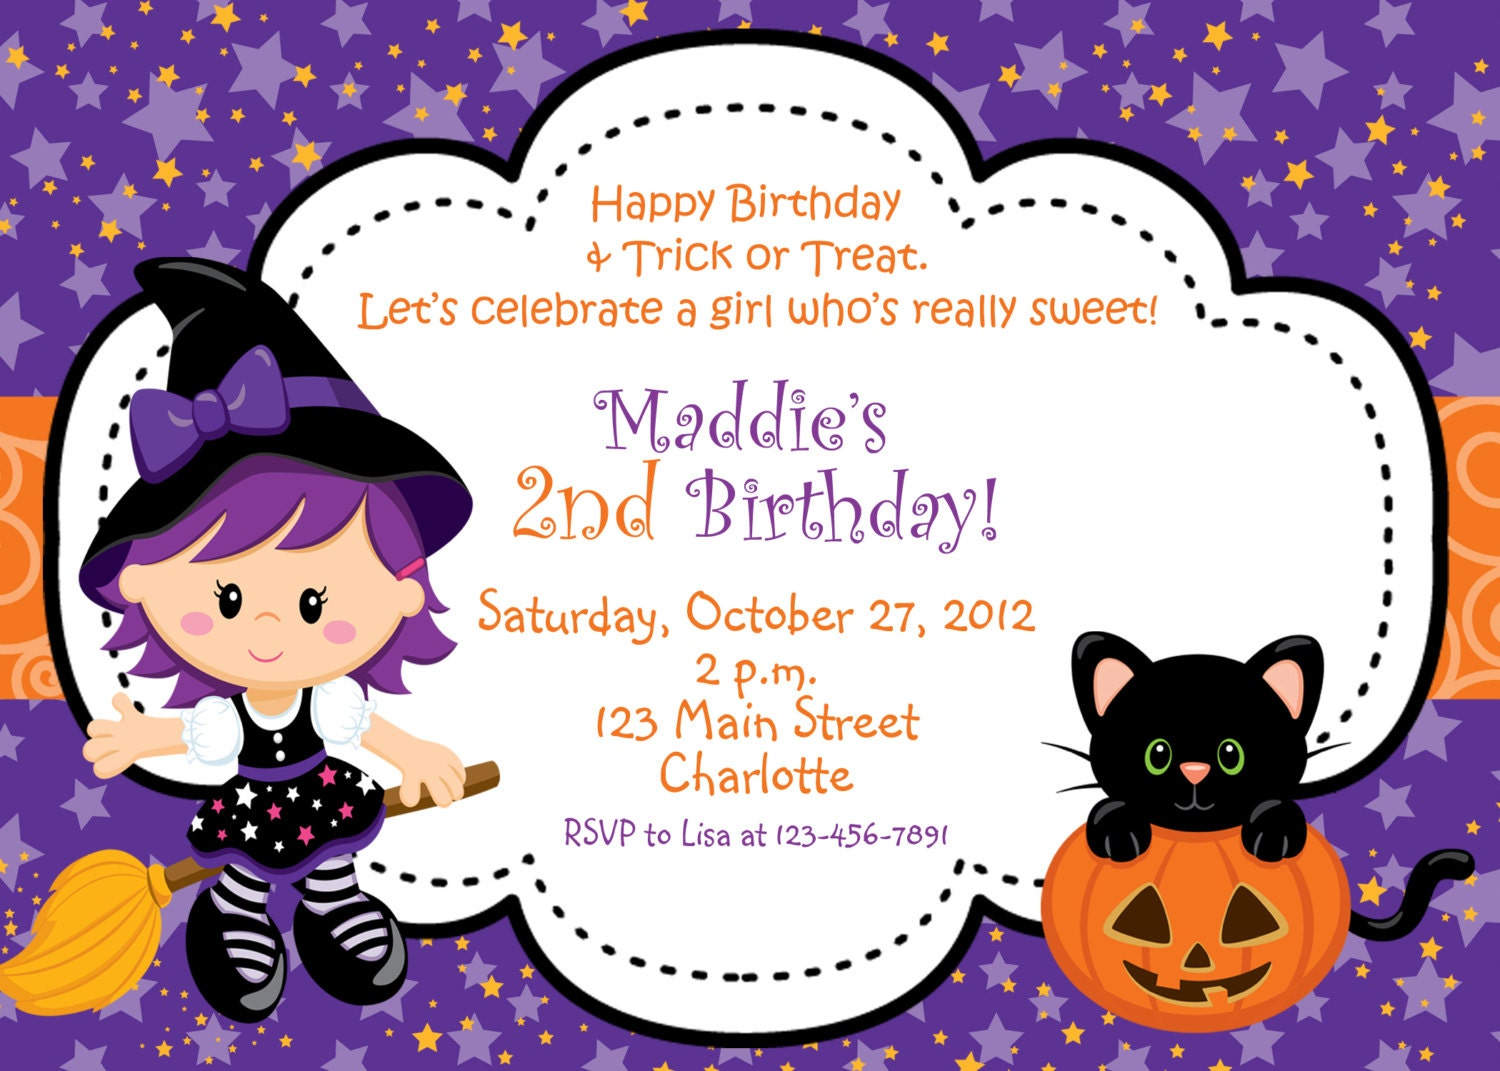 Halloween party invitation witch halloween birthday party